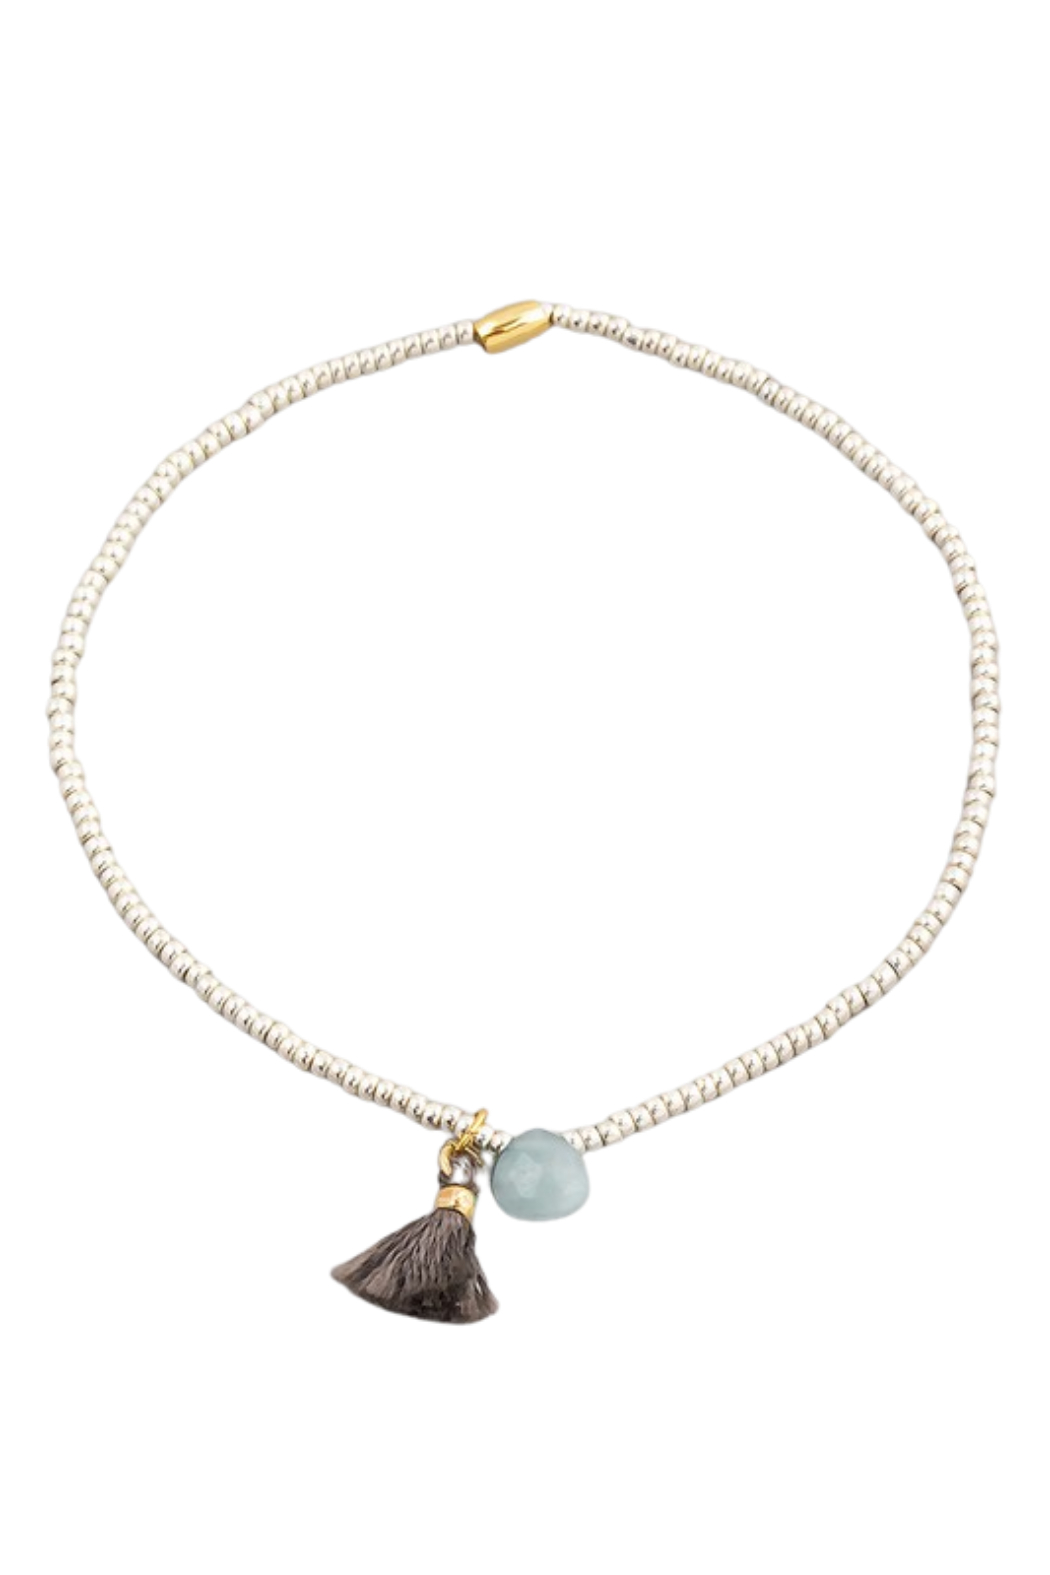 Fame Accessories Dainty Beaded Stone Tassel Bracelet - Front Cropped Image